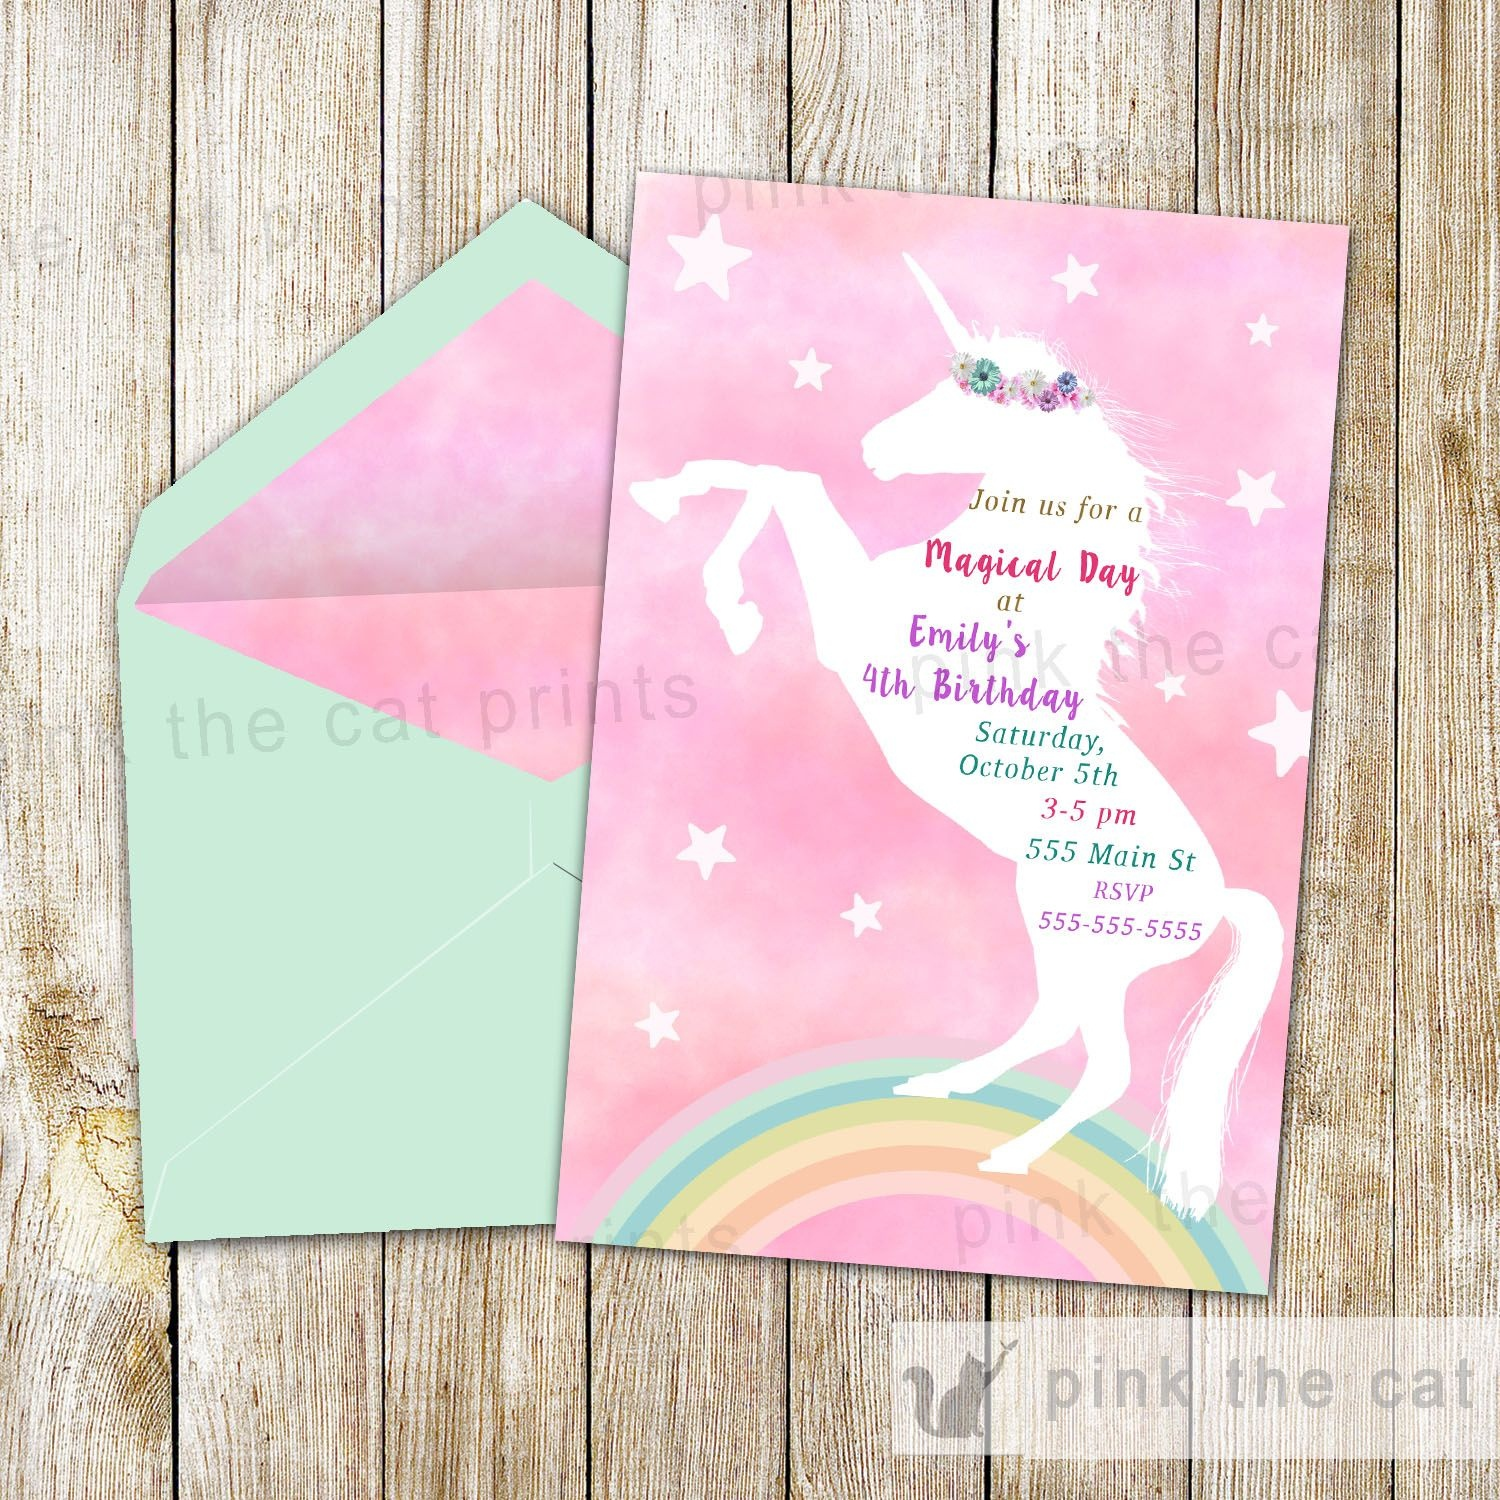 Free Printable Unicorn Invitations | Freebies | Unicorn Invitations - Free Stork Party Invitations Printable